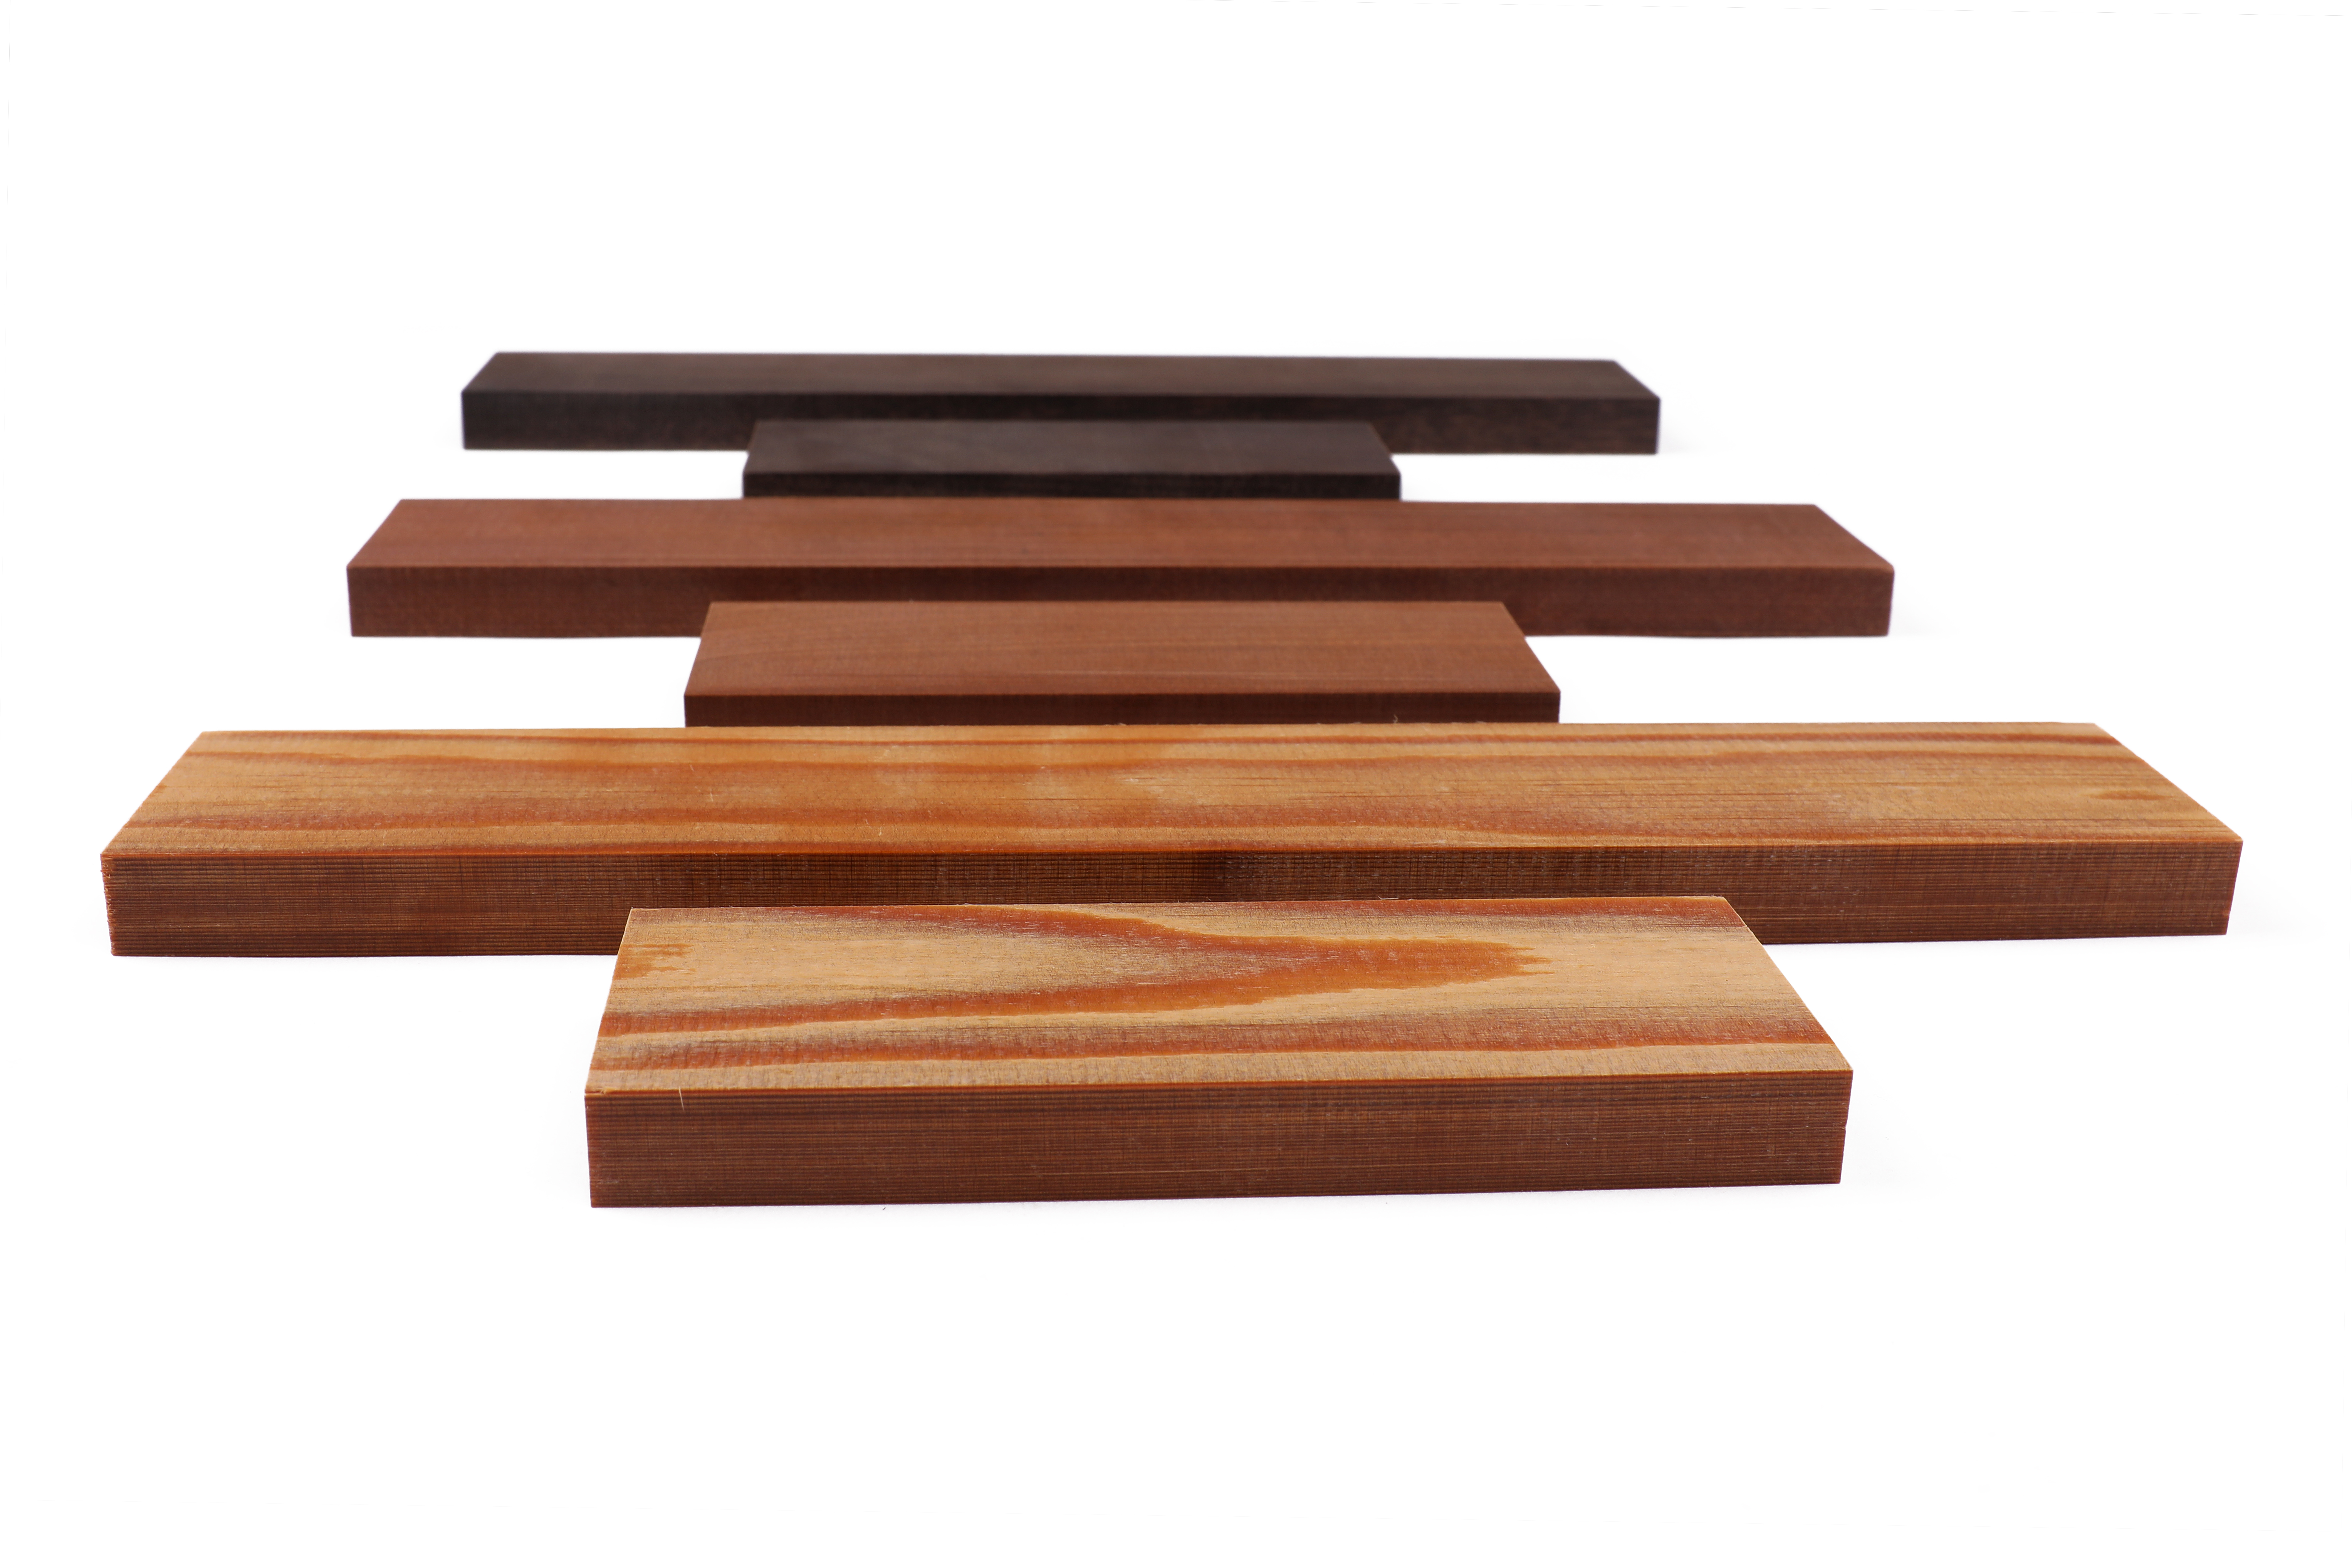 Sonowood square timbers for fingerboard and tailpiece. Front: spruce, center: maple, back: walnut